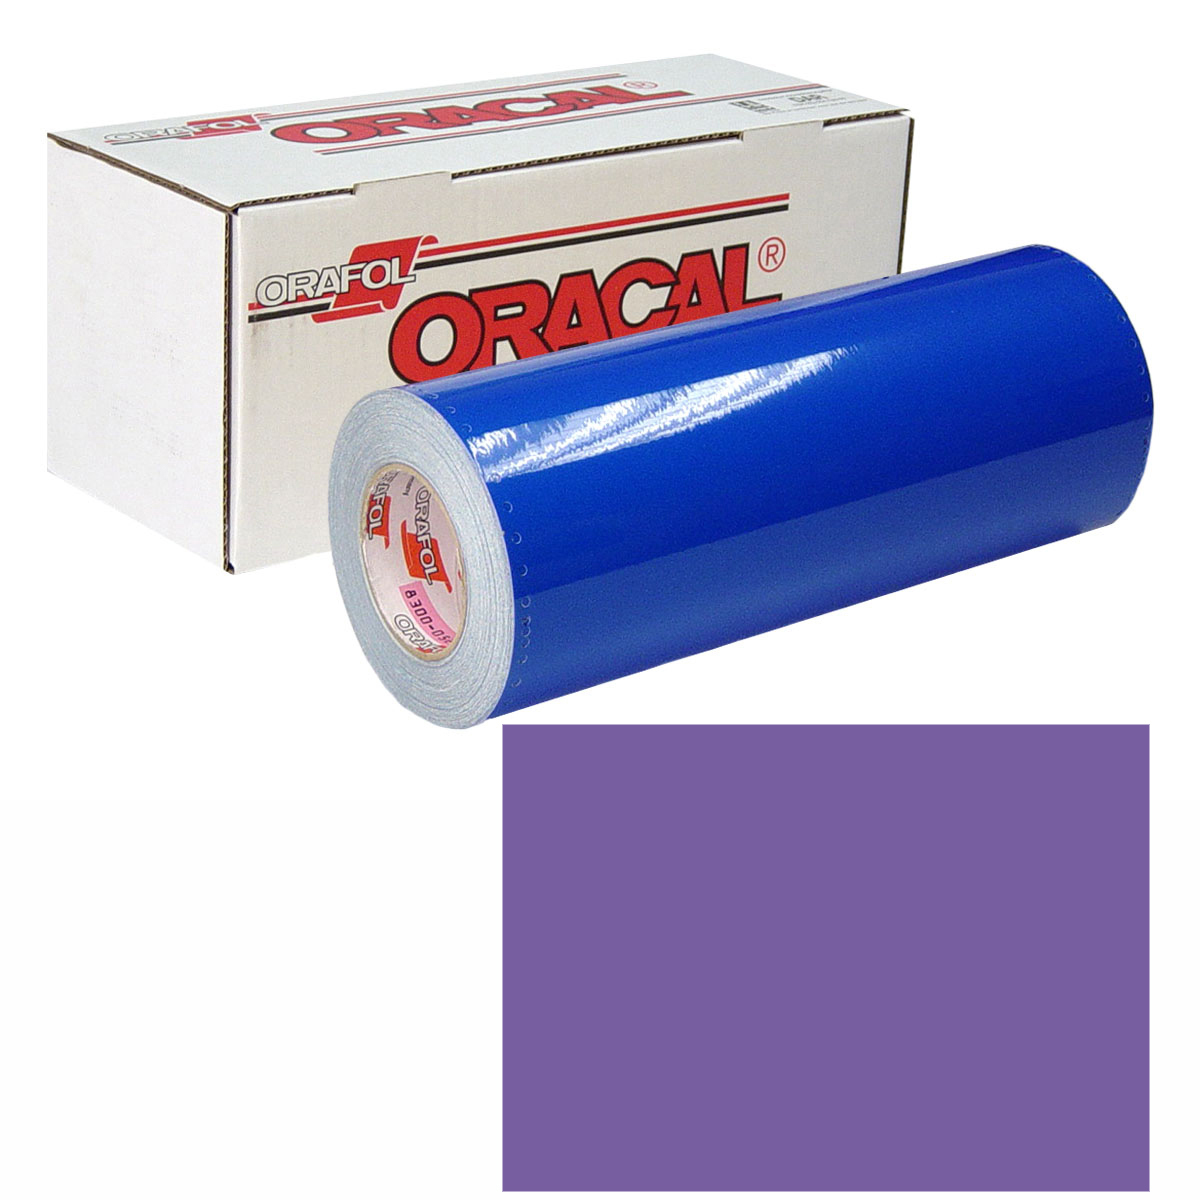 ORACAL 631 Unp 30In X 50Yd 043 Lavender